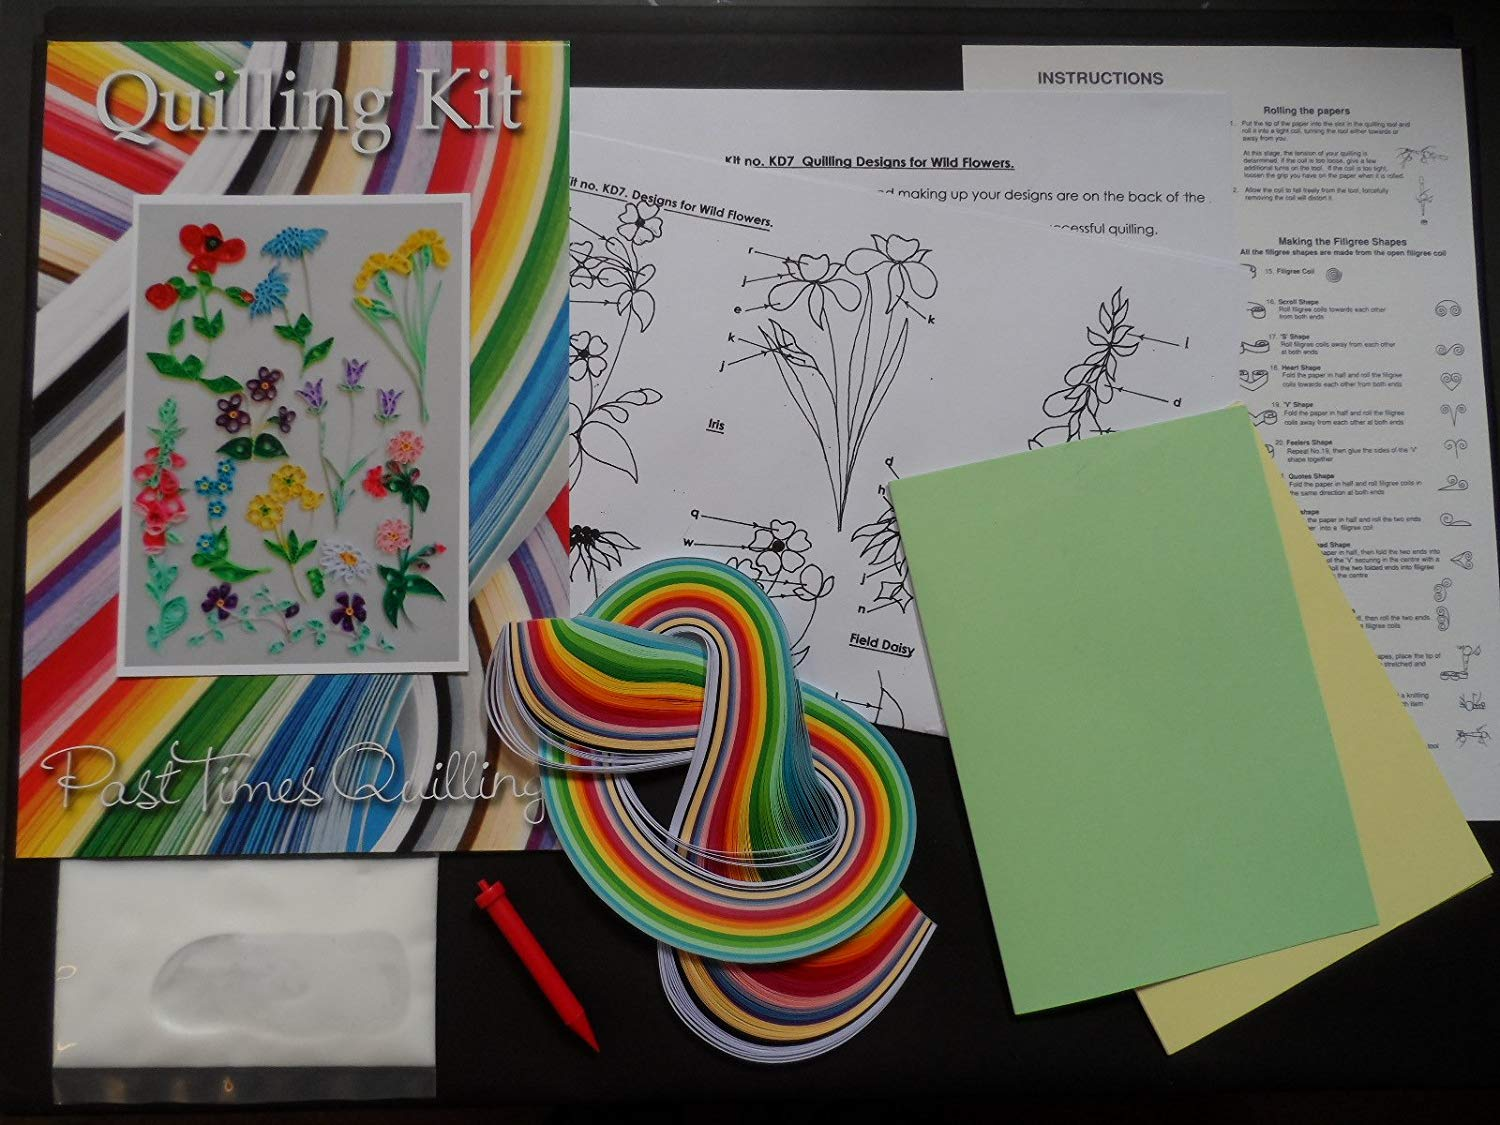 Quilling Kit - Designs for Wild Flowers